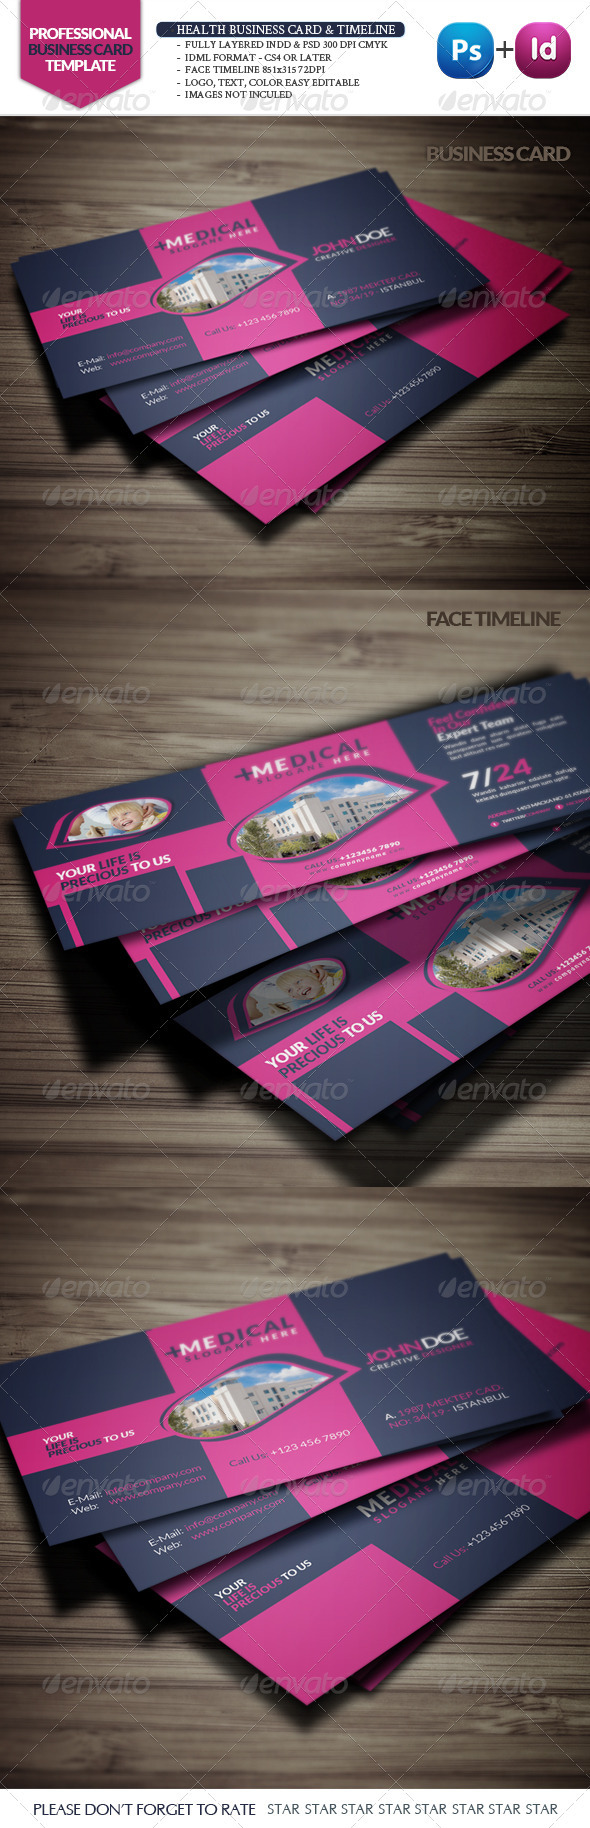 GraphicRiver Health Business Card & Face Timeline 3437415